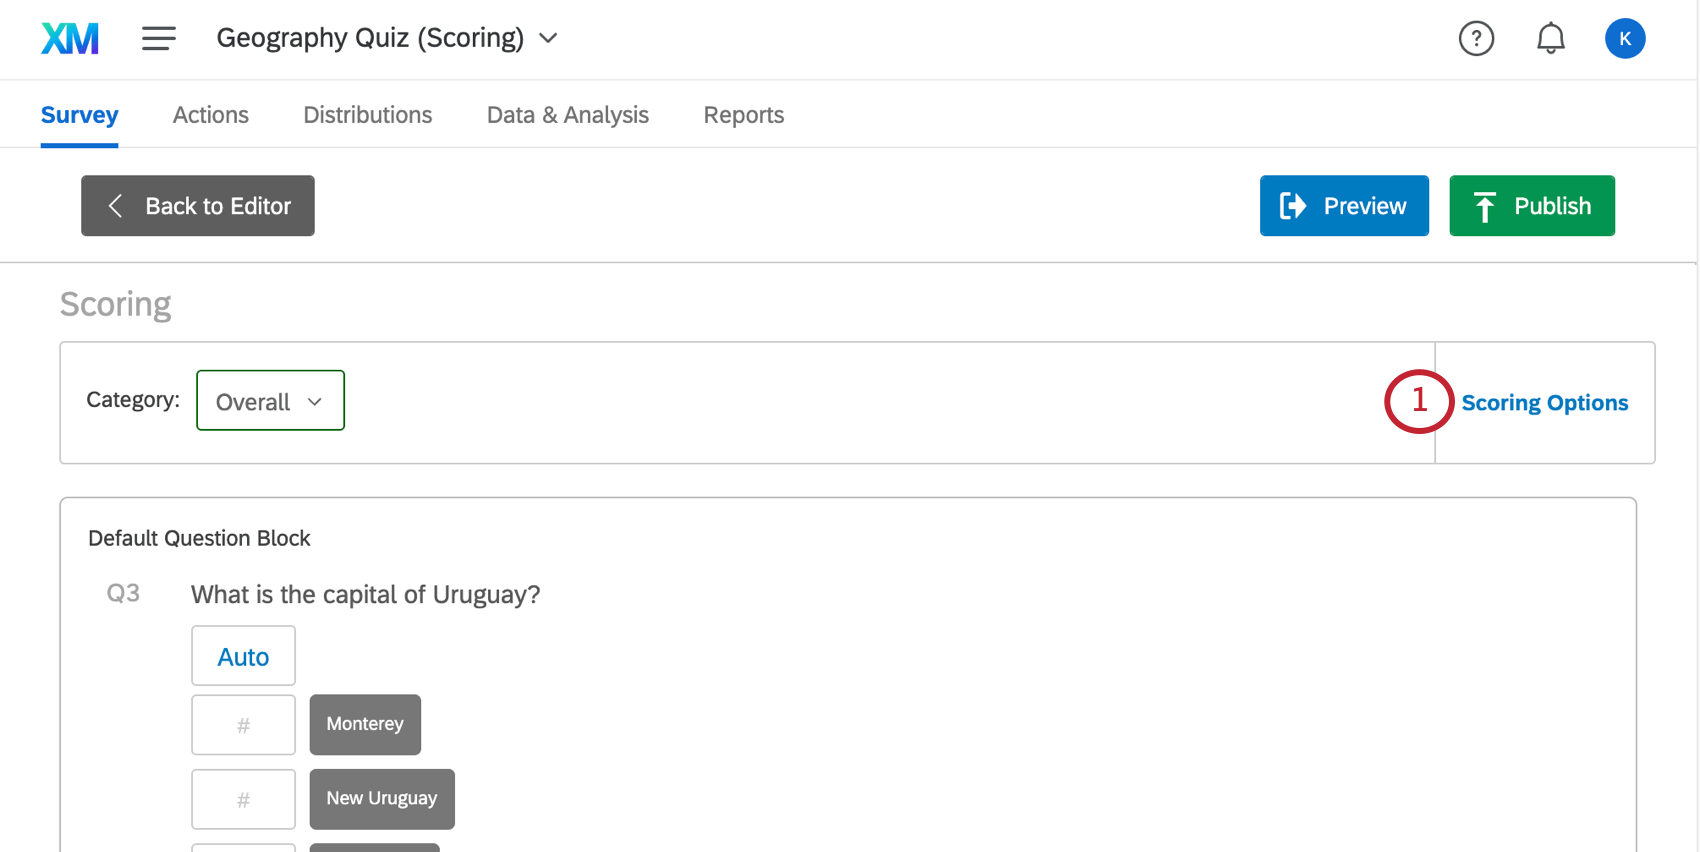 Scoring options on the upper-right of the scoring editor